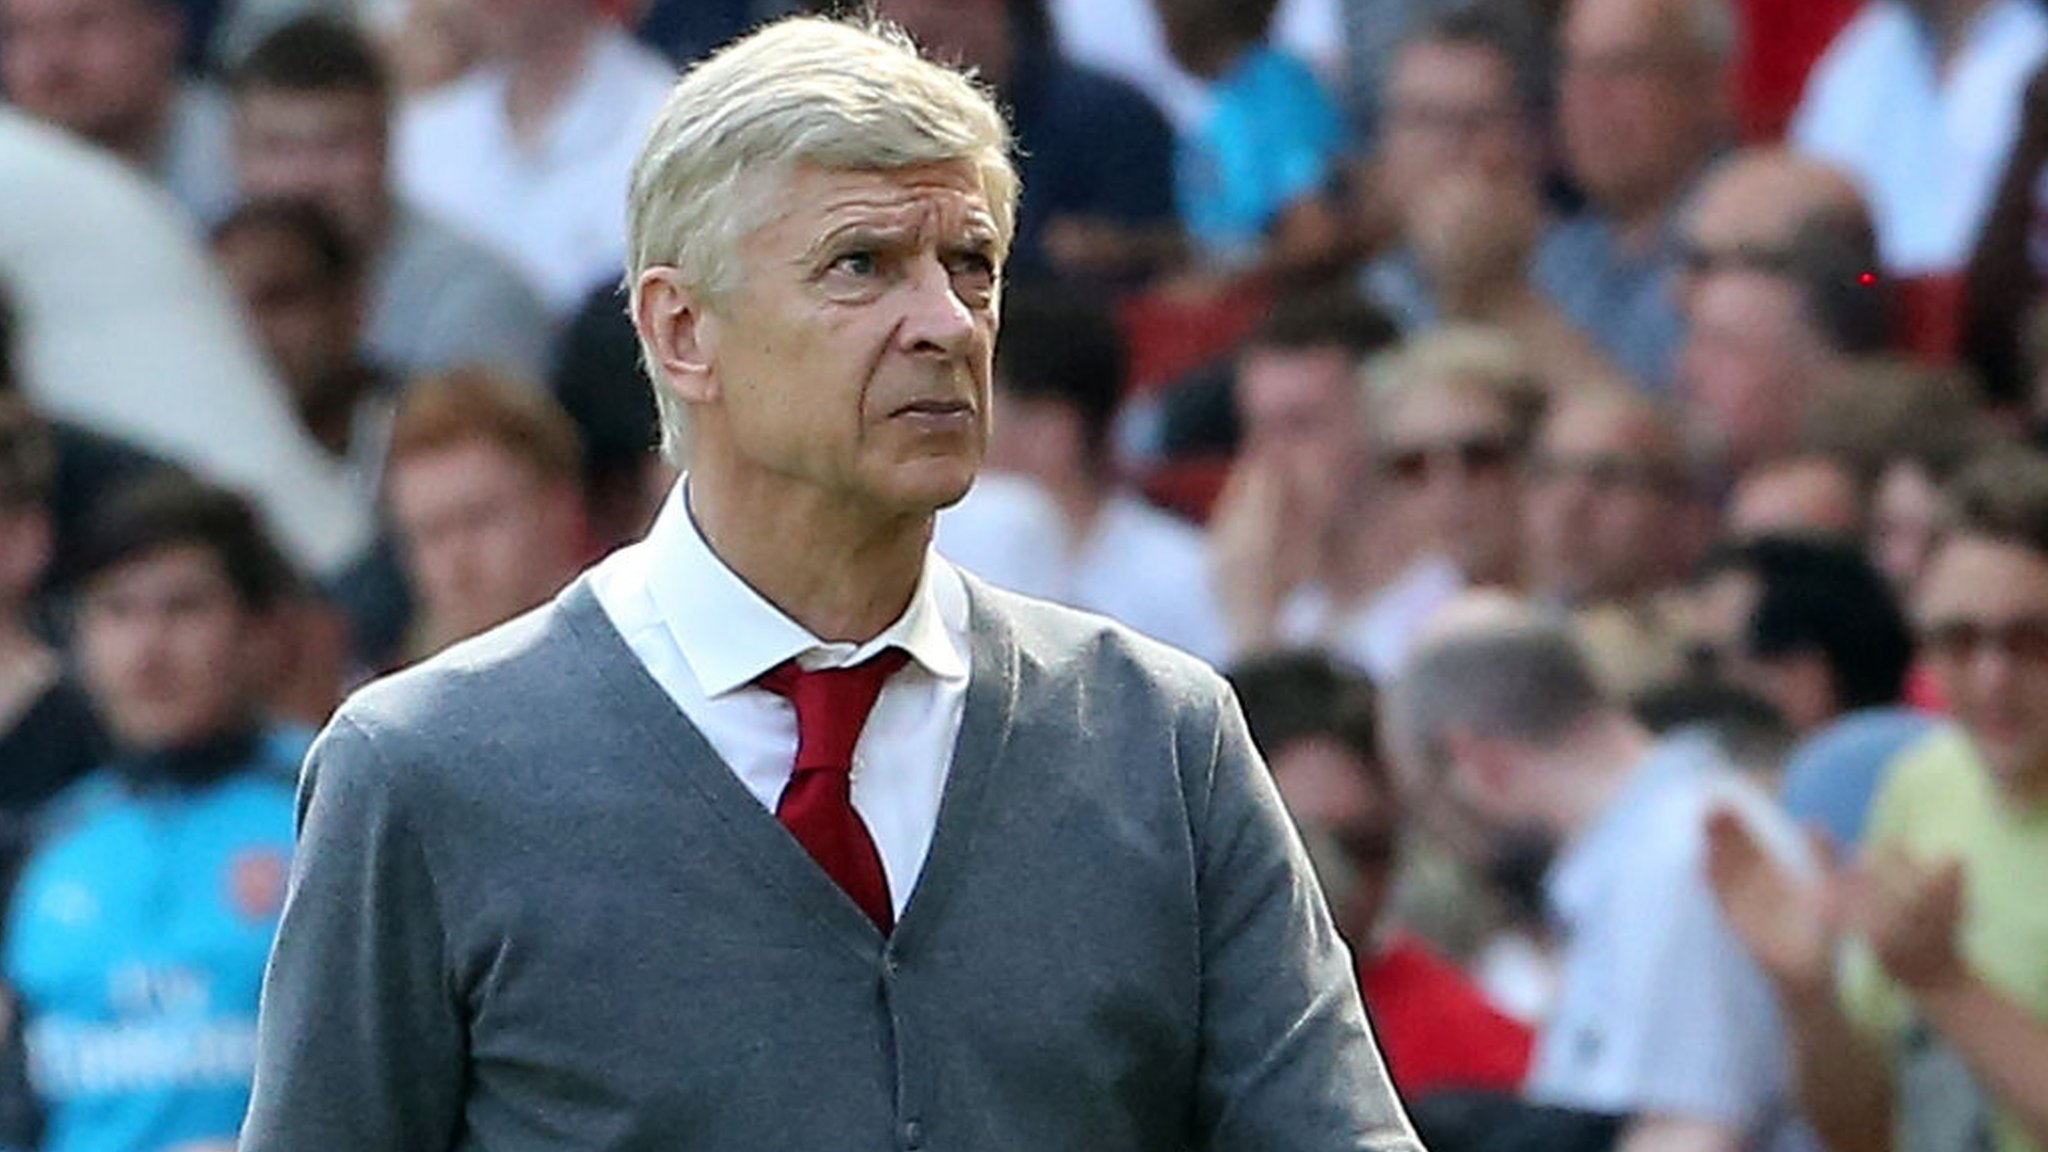 Lack of unity hurts Arsenal - Wenger on fans, successor & what next